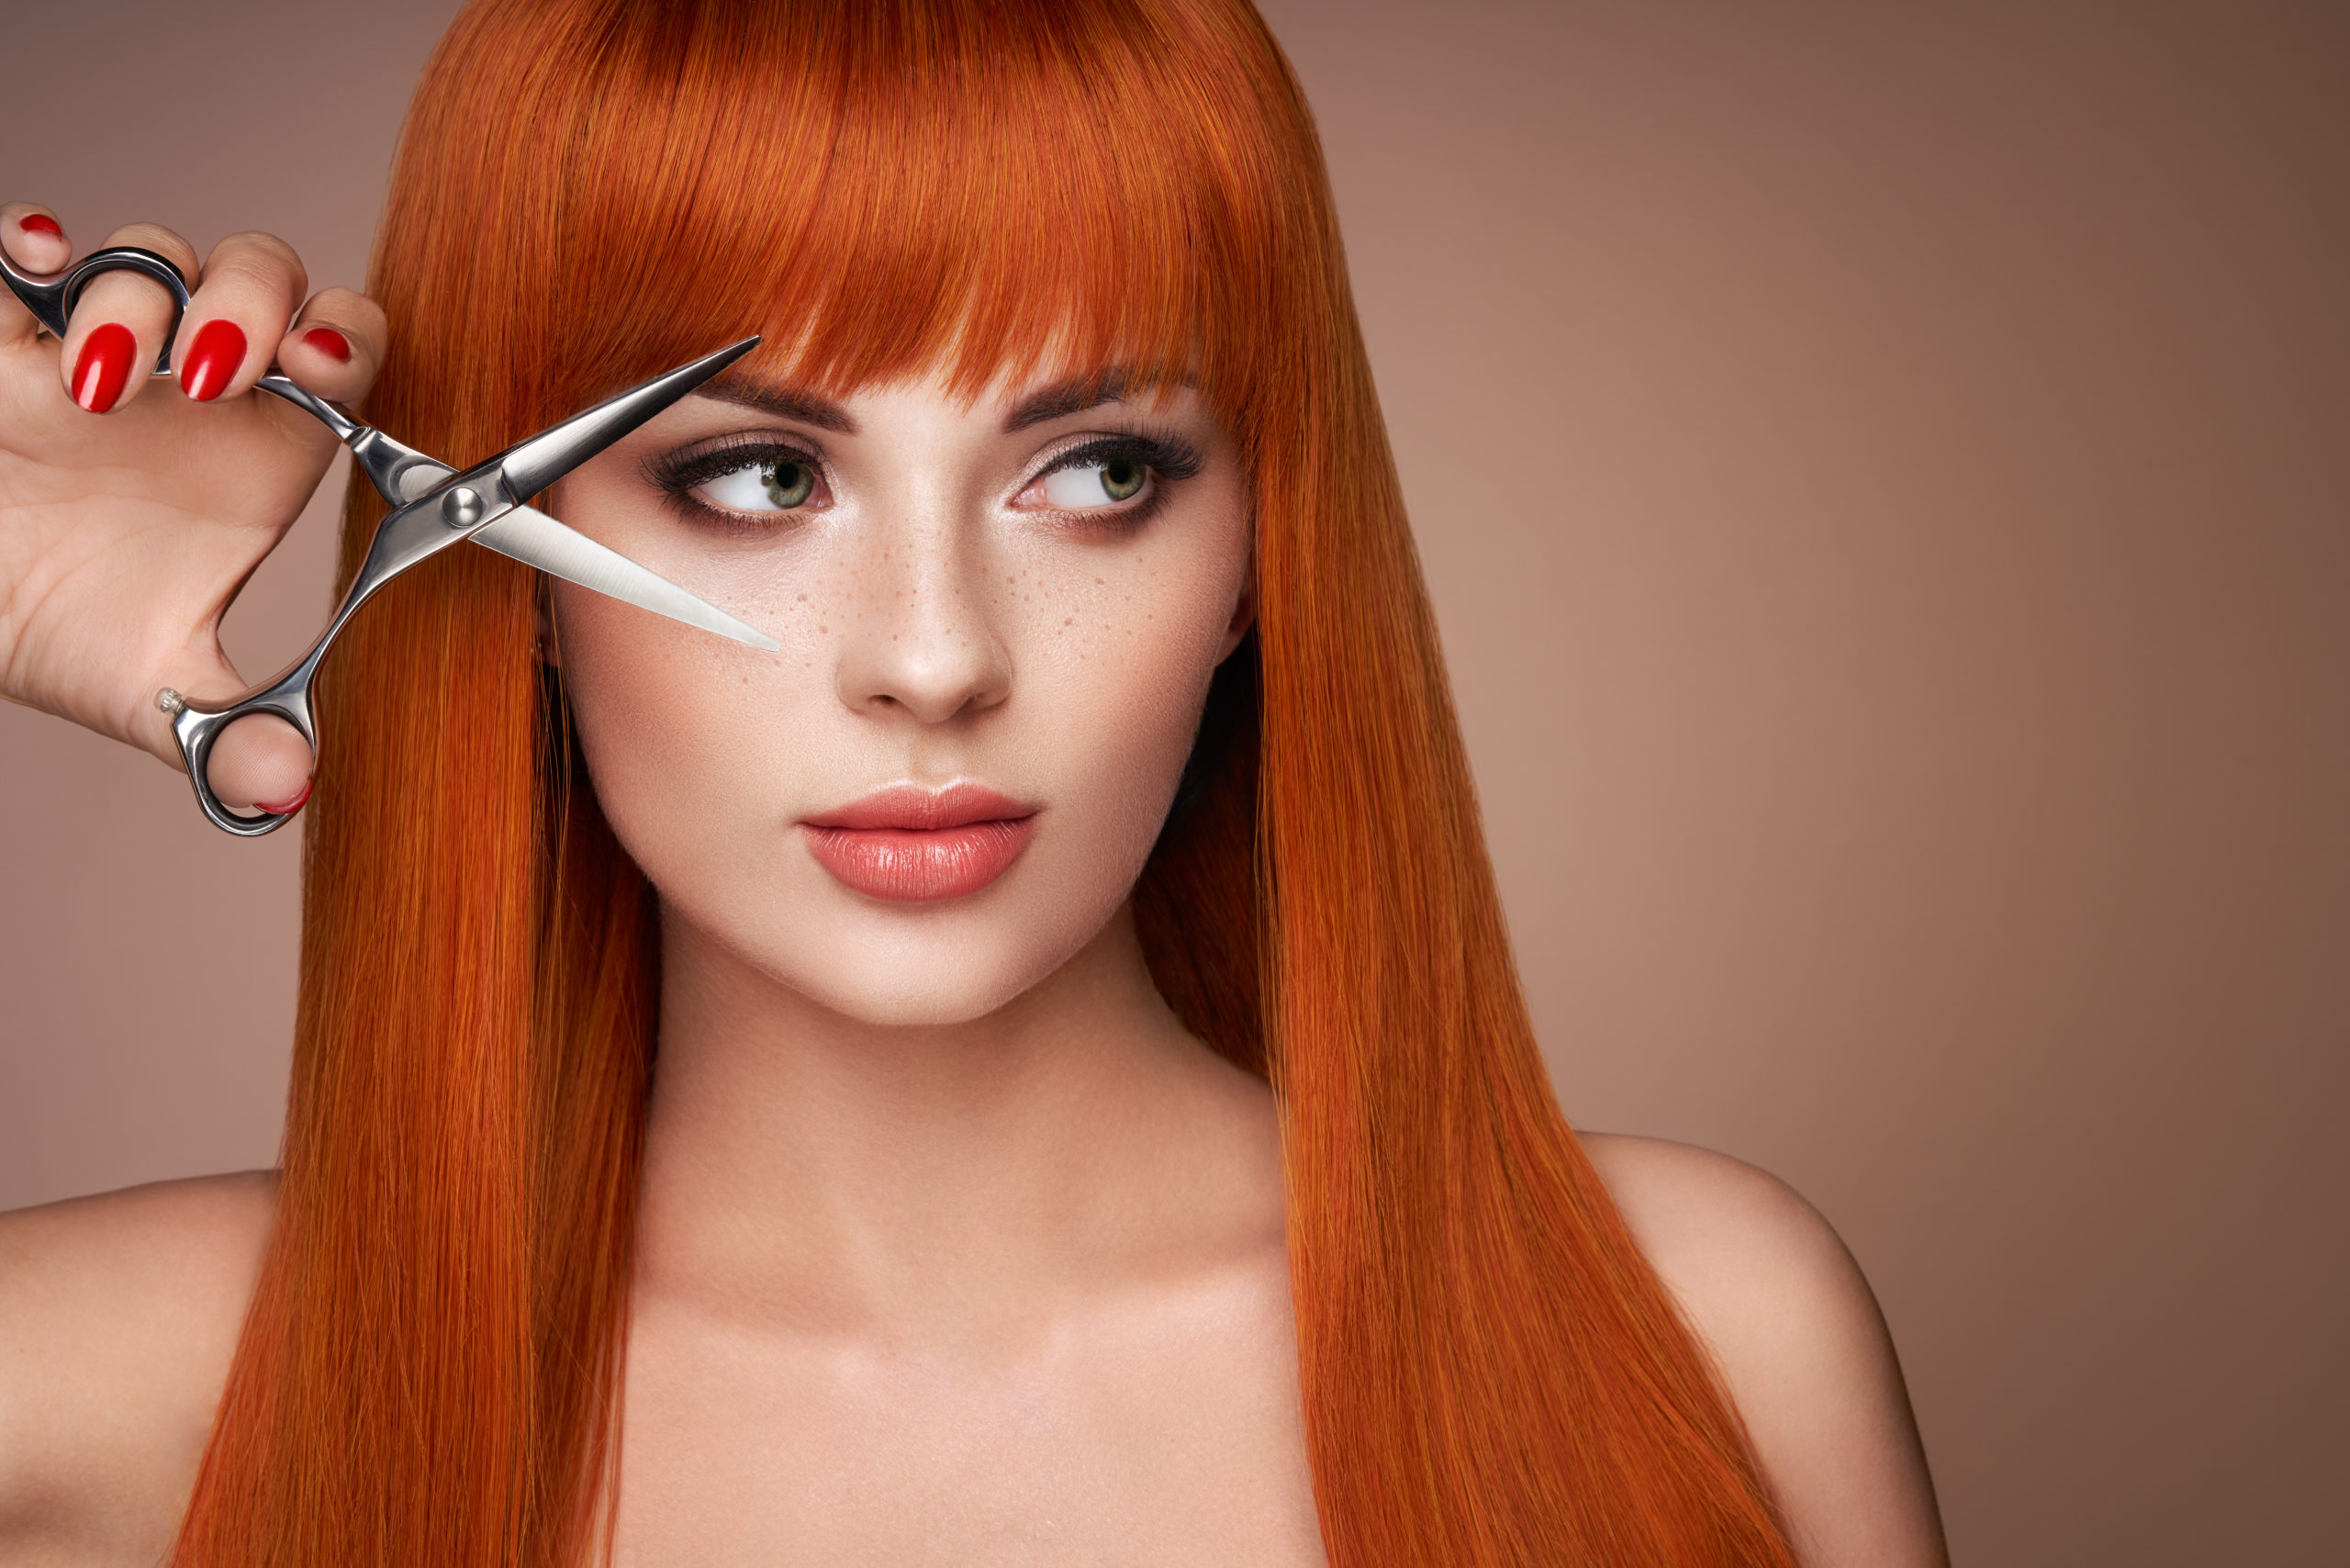 Beautiful young woman with a scissors